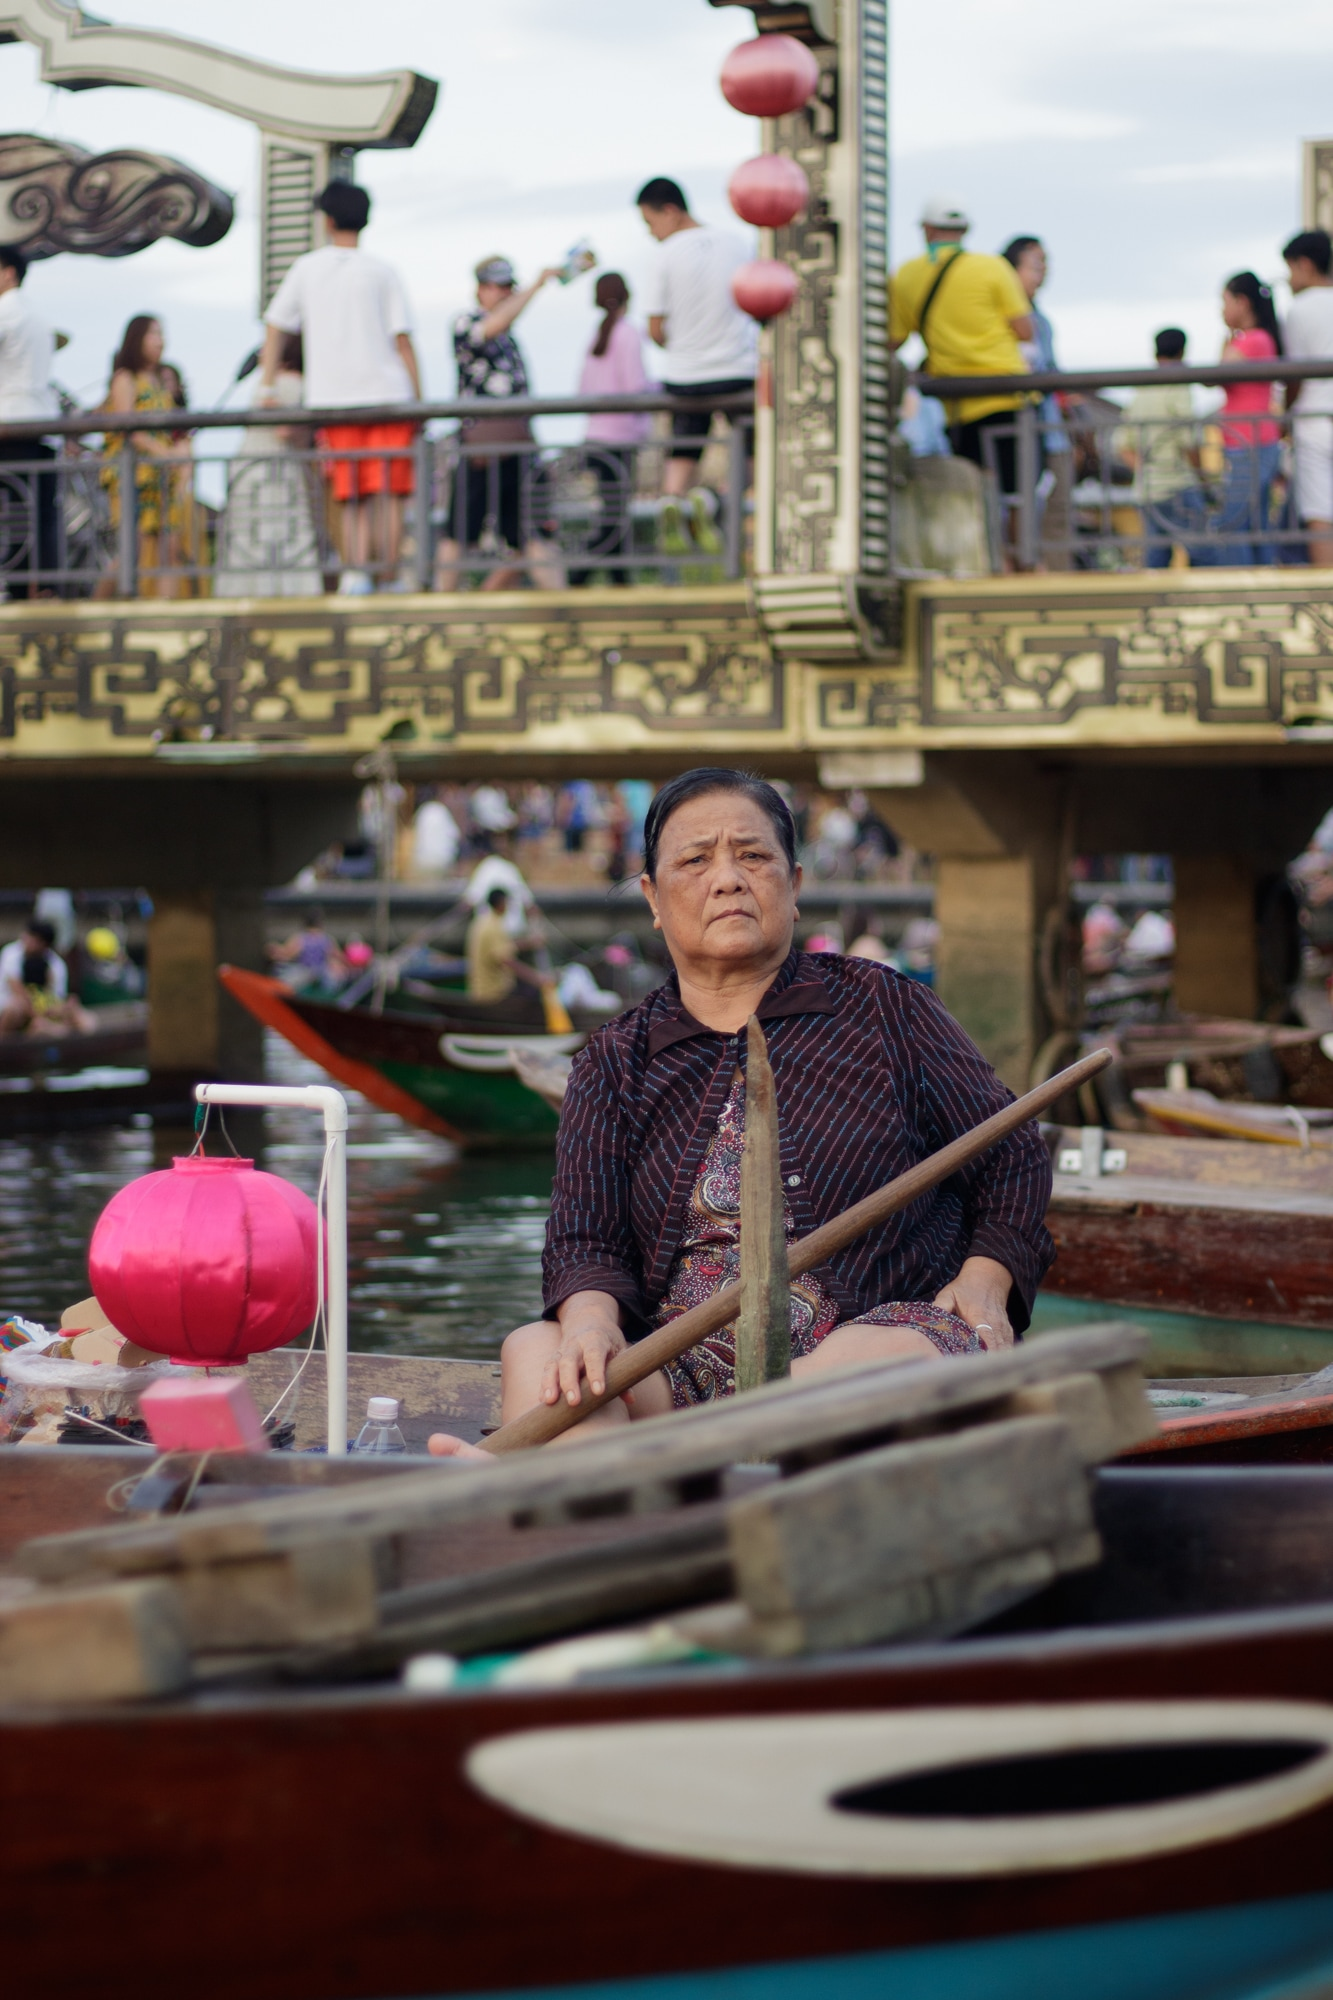 A woman pictured sitting on her boat in Hoi An.